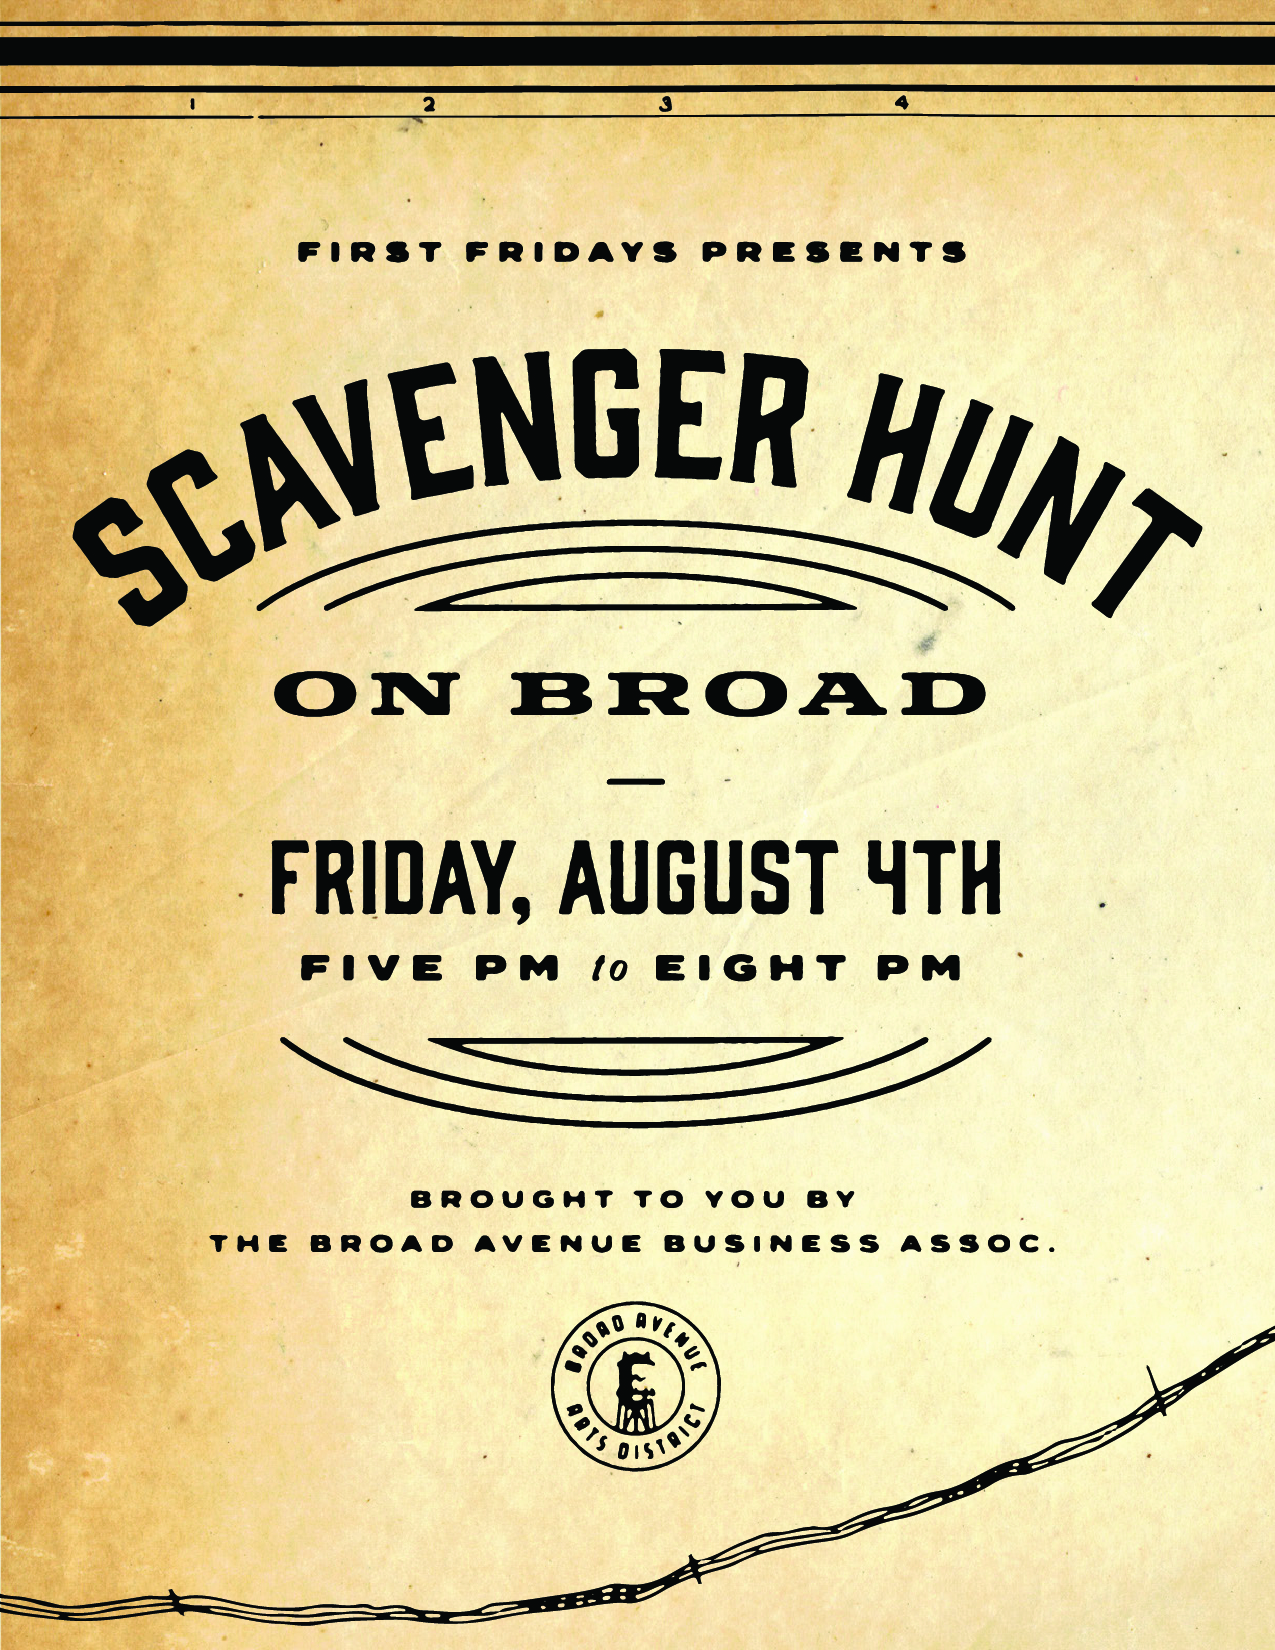 Come to Broad Avenue for some scavenger hunt fun!!  Grab a clue card at any participating shop.  Wiseacre Brewing Company   Falling Into Place   Merchants on Broad   T Clifton Art   Paggios Salon   Bingham & Broad   Pedaltown Bicycle Company   Mbabazi House of Style   Five in One Social Club   Muddy's Bake Shop   Found Memphis   When you complete the card, turn it back in (at any participating shop) for a chance to win pirzes from the shops of Broad Avenue!   Kebab Food Truck  will also be on the street.  As always, thanks to  Kitbash Brand Design  for the artwork!